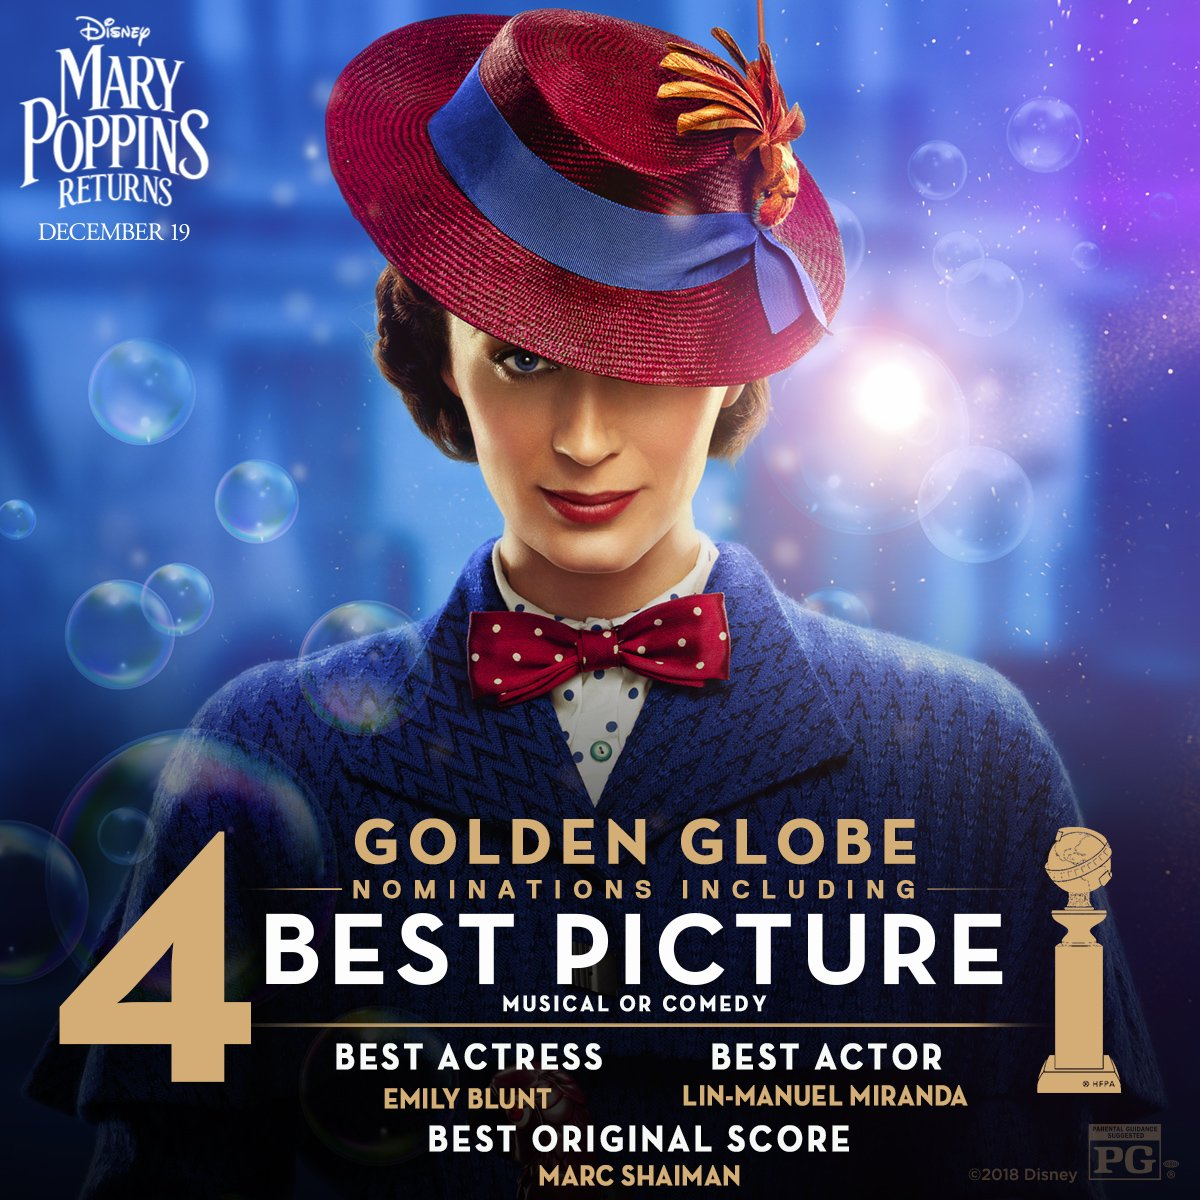 Mary Poppins Returns has been nominated for 4 Golden Globe Awards, including Best Picture! #GoldenGlobes